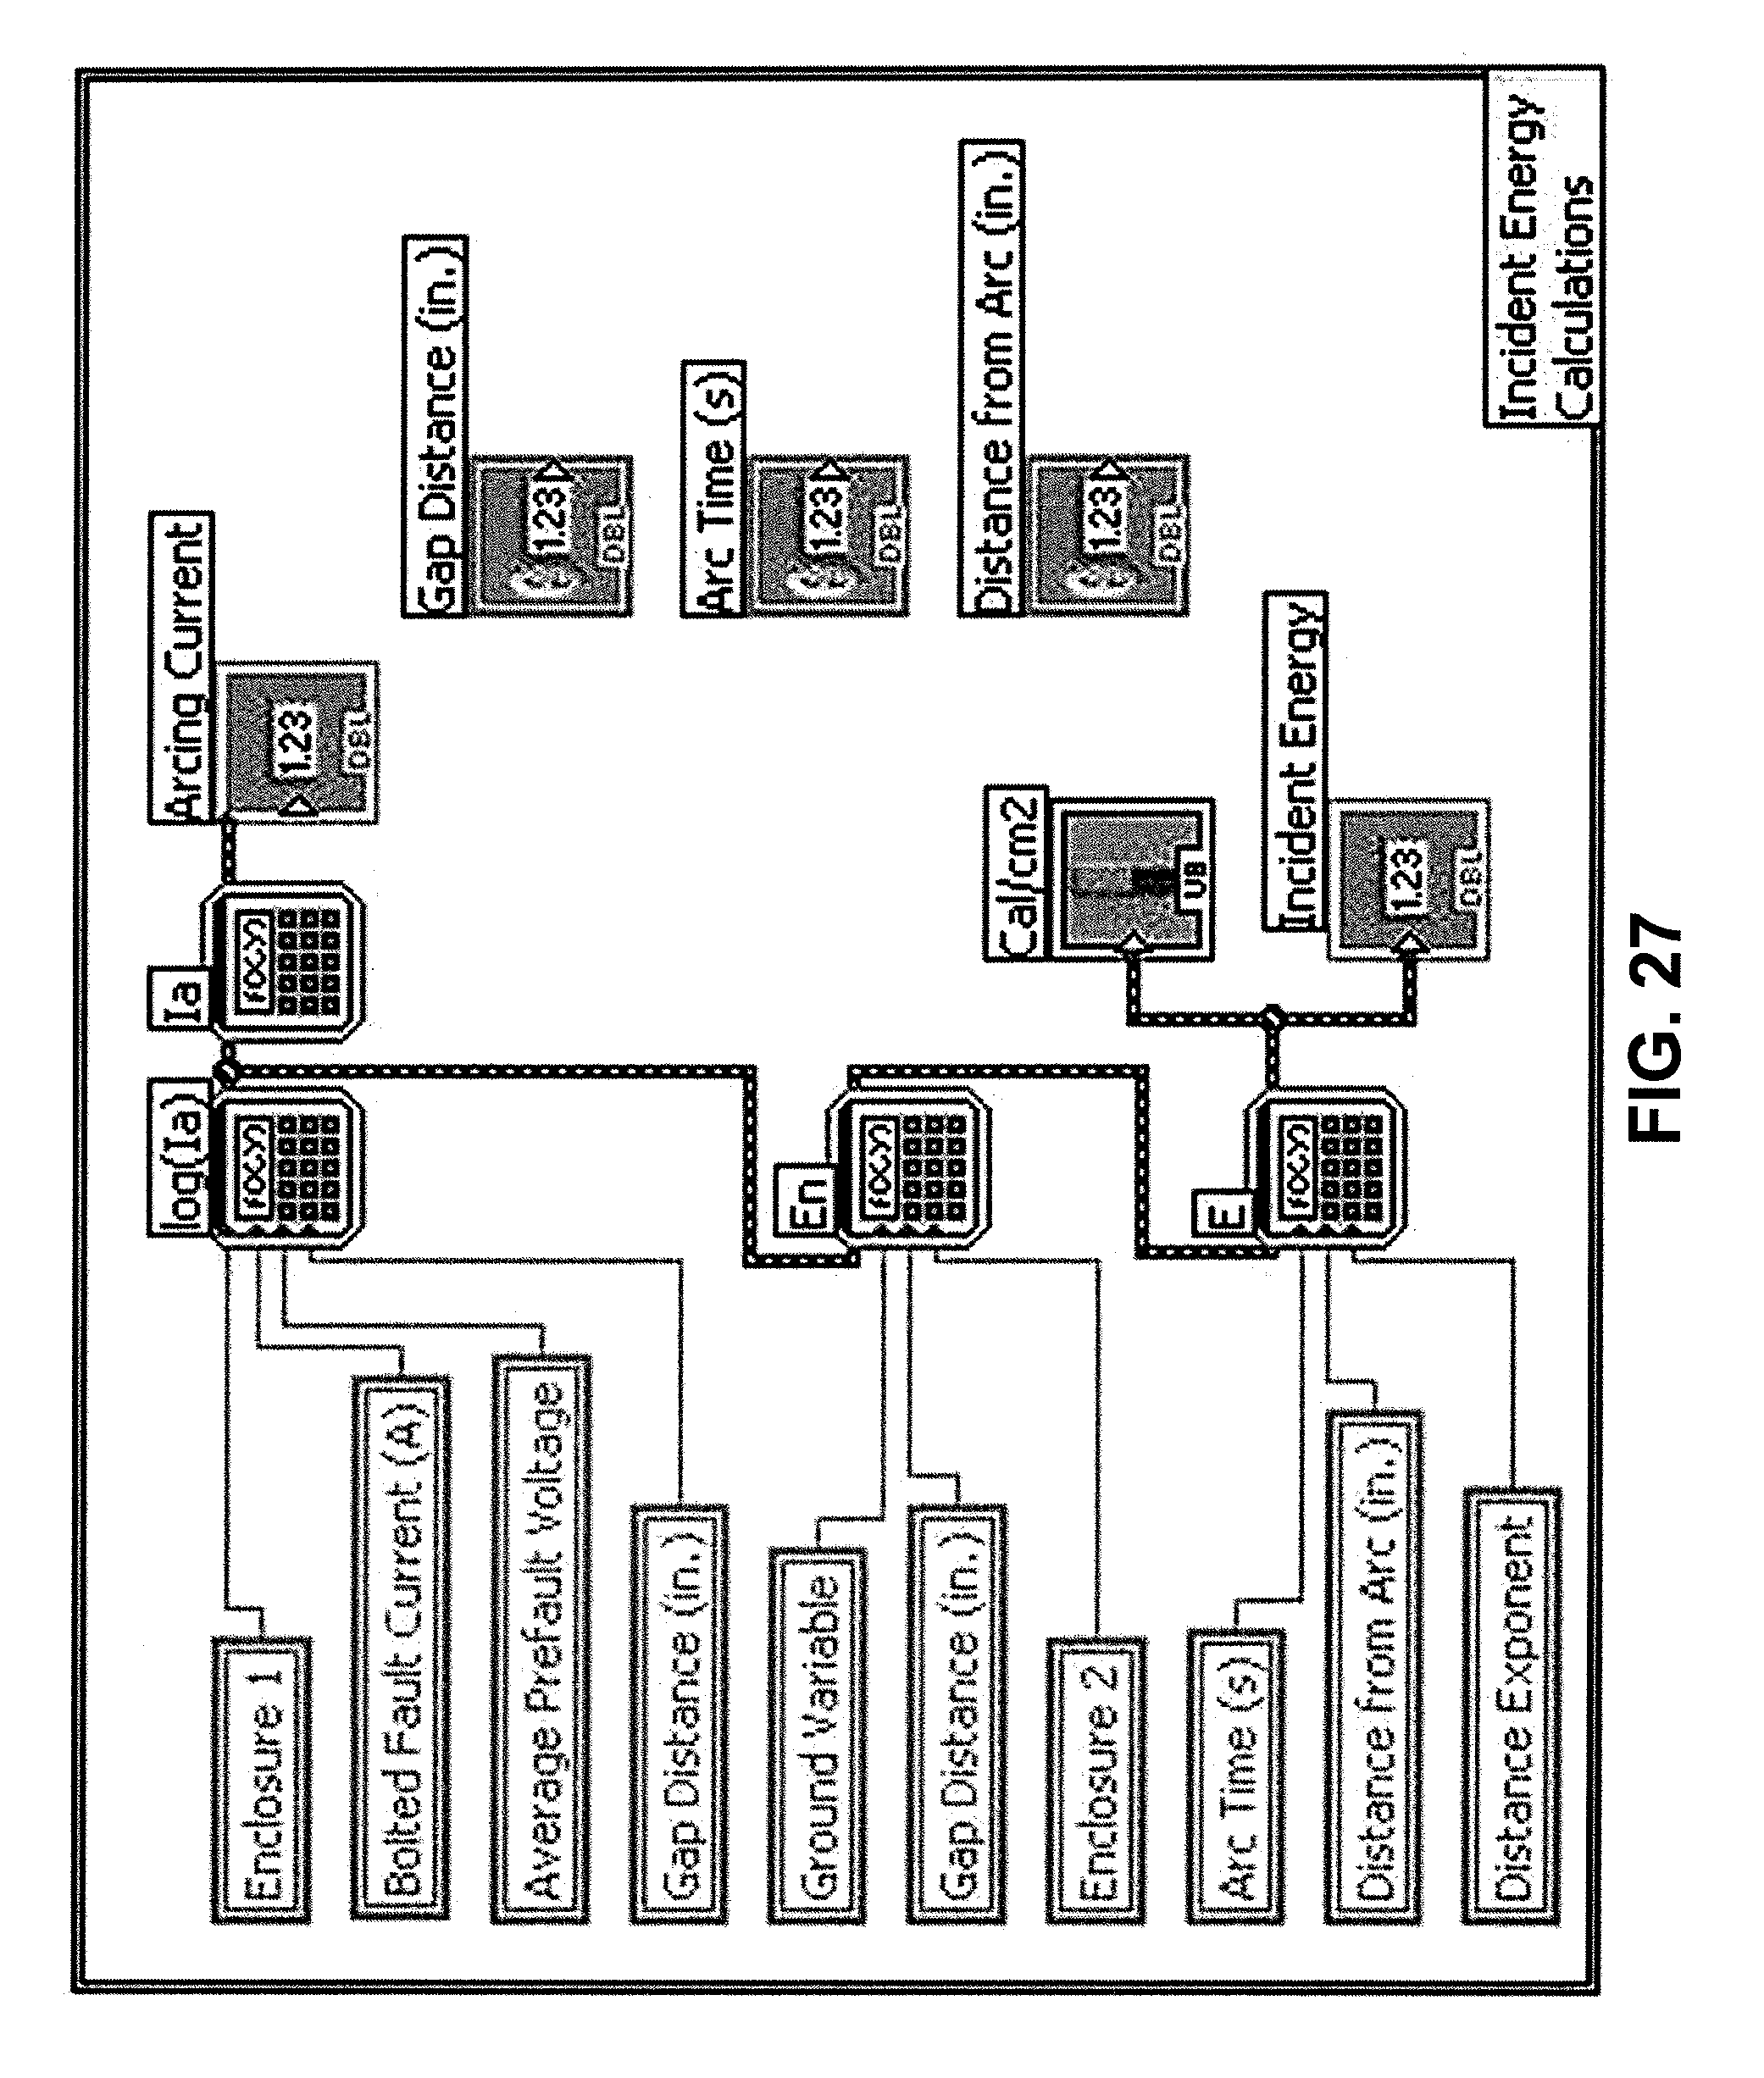 Patent Us20100026317 Impedance Based Arc Fault Determination Wiring Diagram Drawing